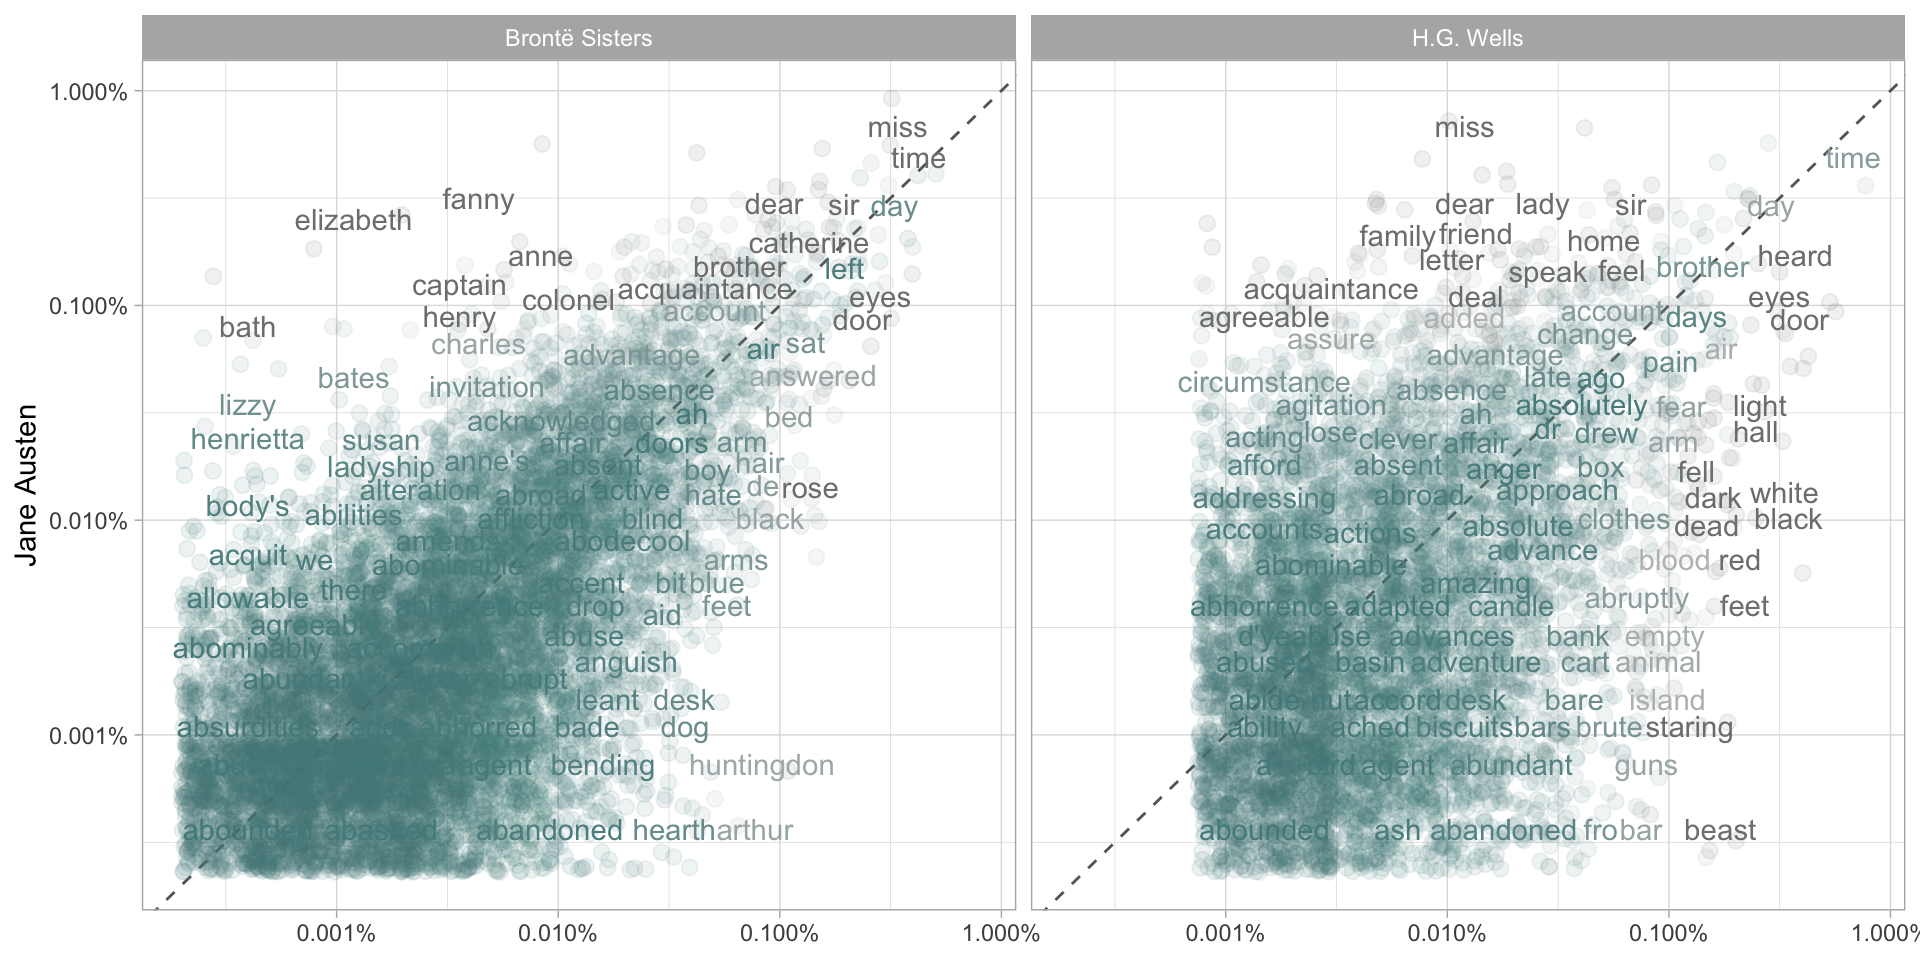 Comparing the word frequencies of Jane Austen, the Brontë sisters, and H.G. Wells